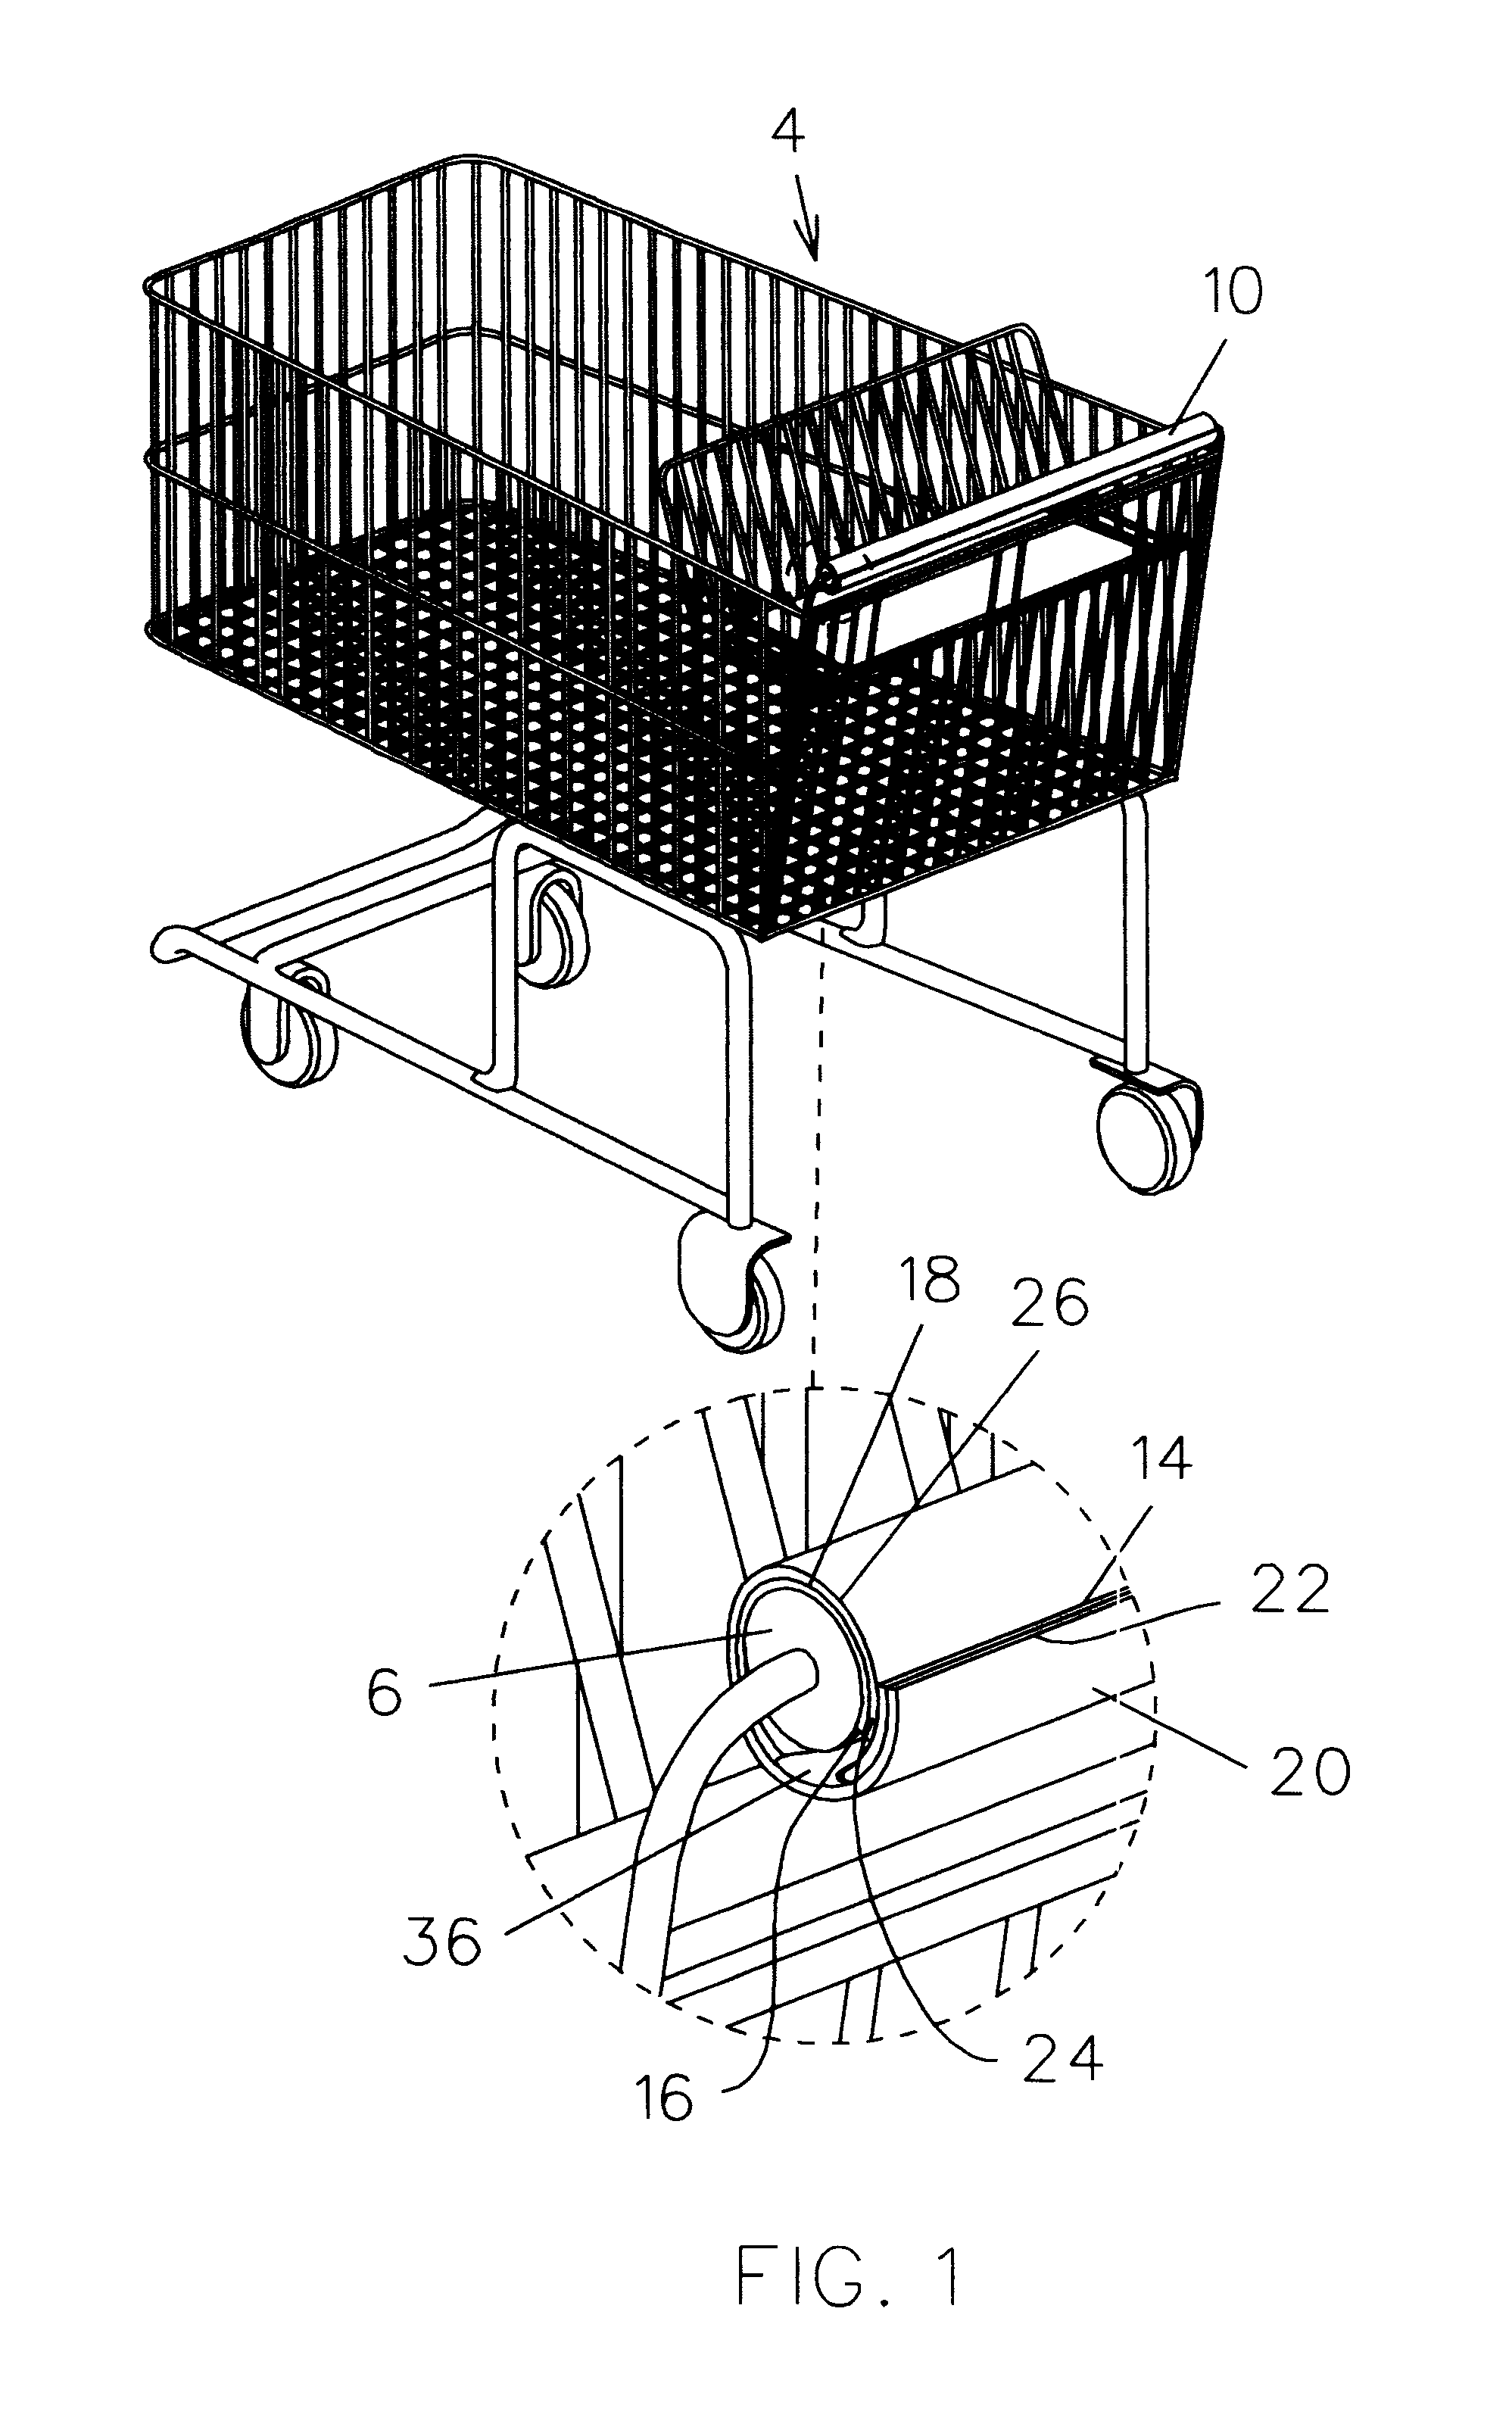 questionnaire of shopping cart handle cover Buy folding cart on wheels products like folding trolley dolly cart in blue, bigger smart cart in black, smart cart cooler in black, origami kitchen cart in grey, versacart folding utility cart in navy, chevron smart cart in grey, conair® travel smart® folding multi-use cart in black, nardi galileo folding beverage cart in white.